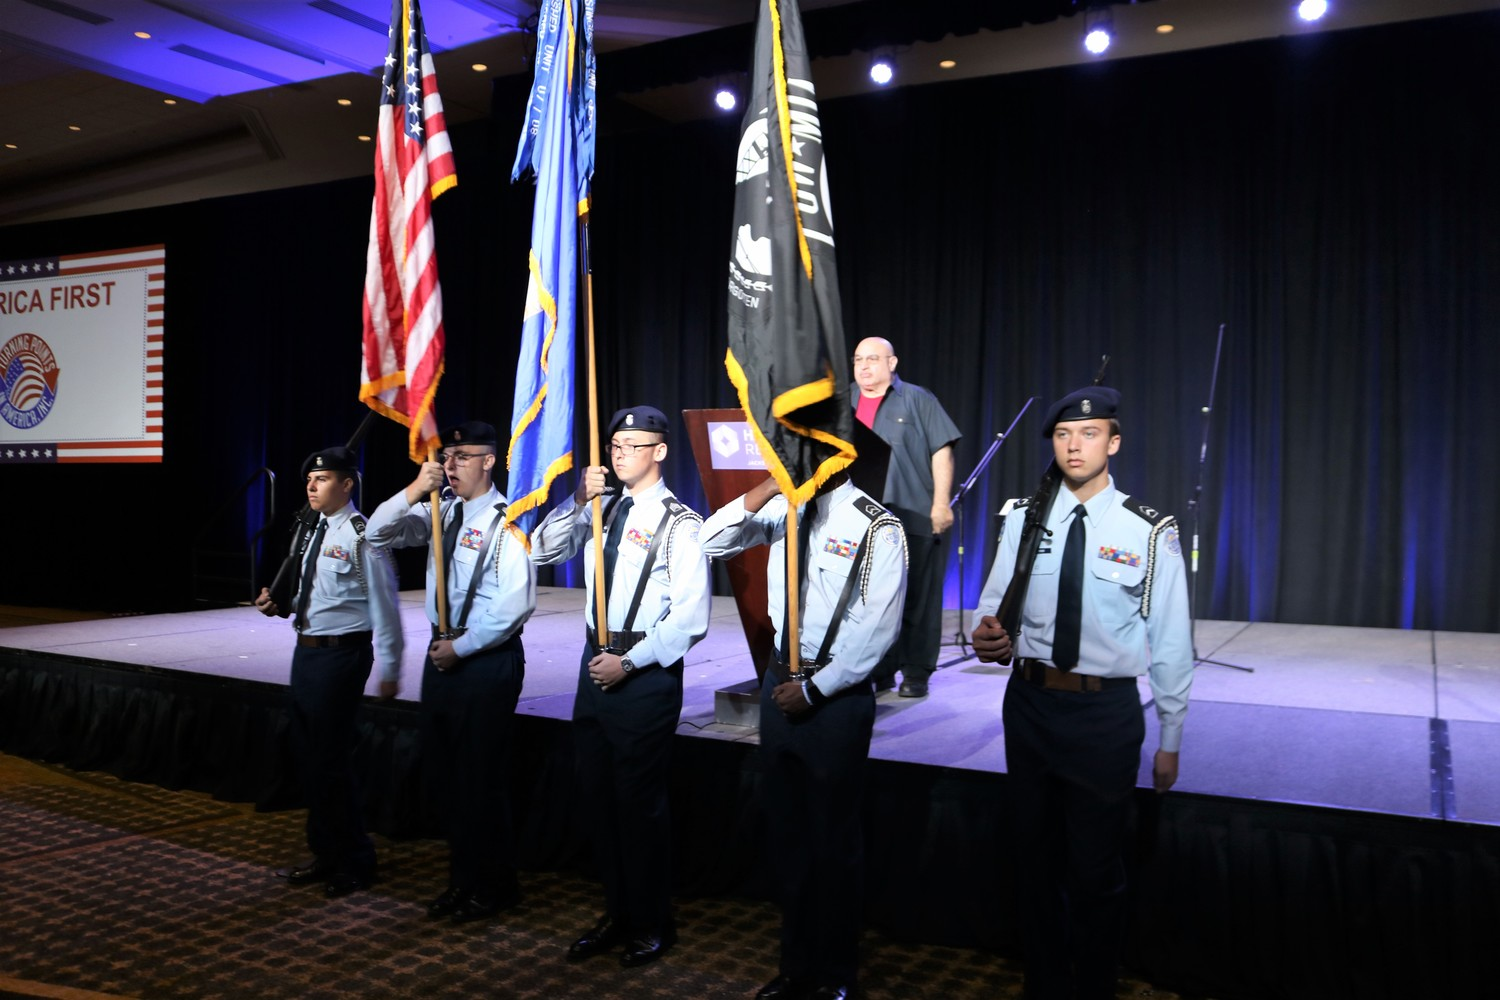 The Sandalwood High JROTC Color Guard presents the colors for the performance of the national anthem at a Benghazi tribute event in Jacksonville on Nov. 3.